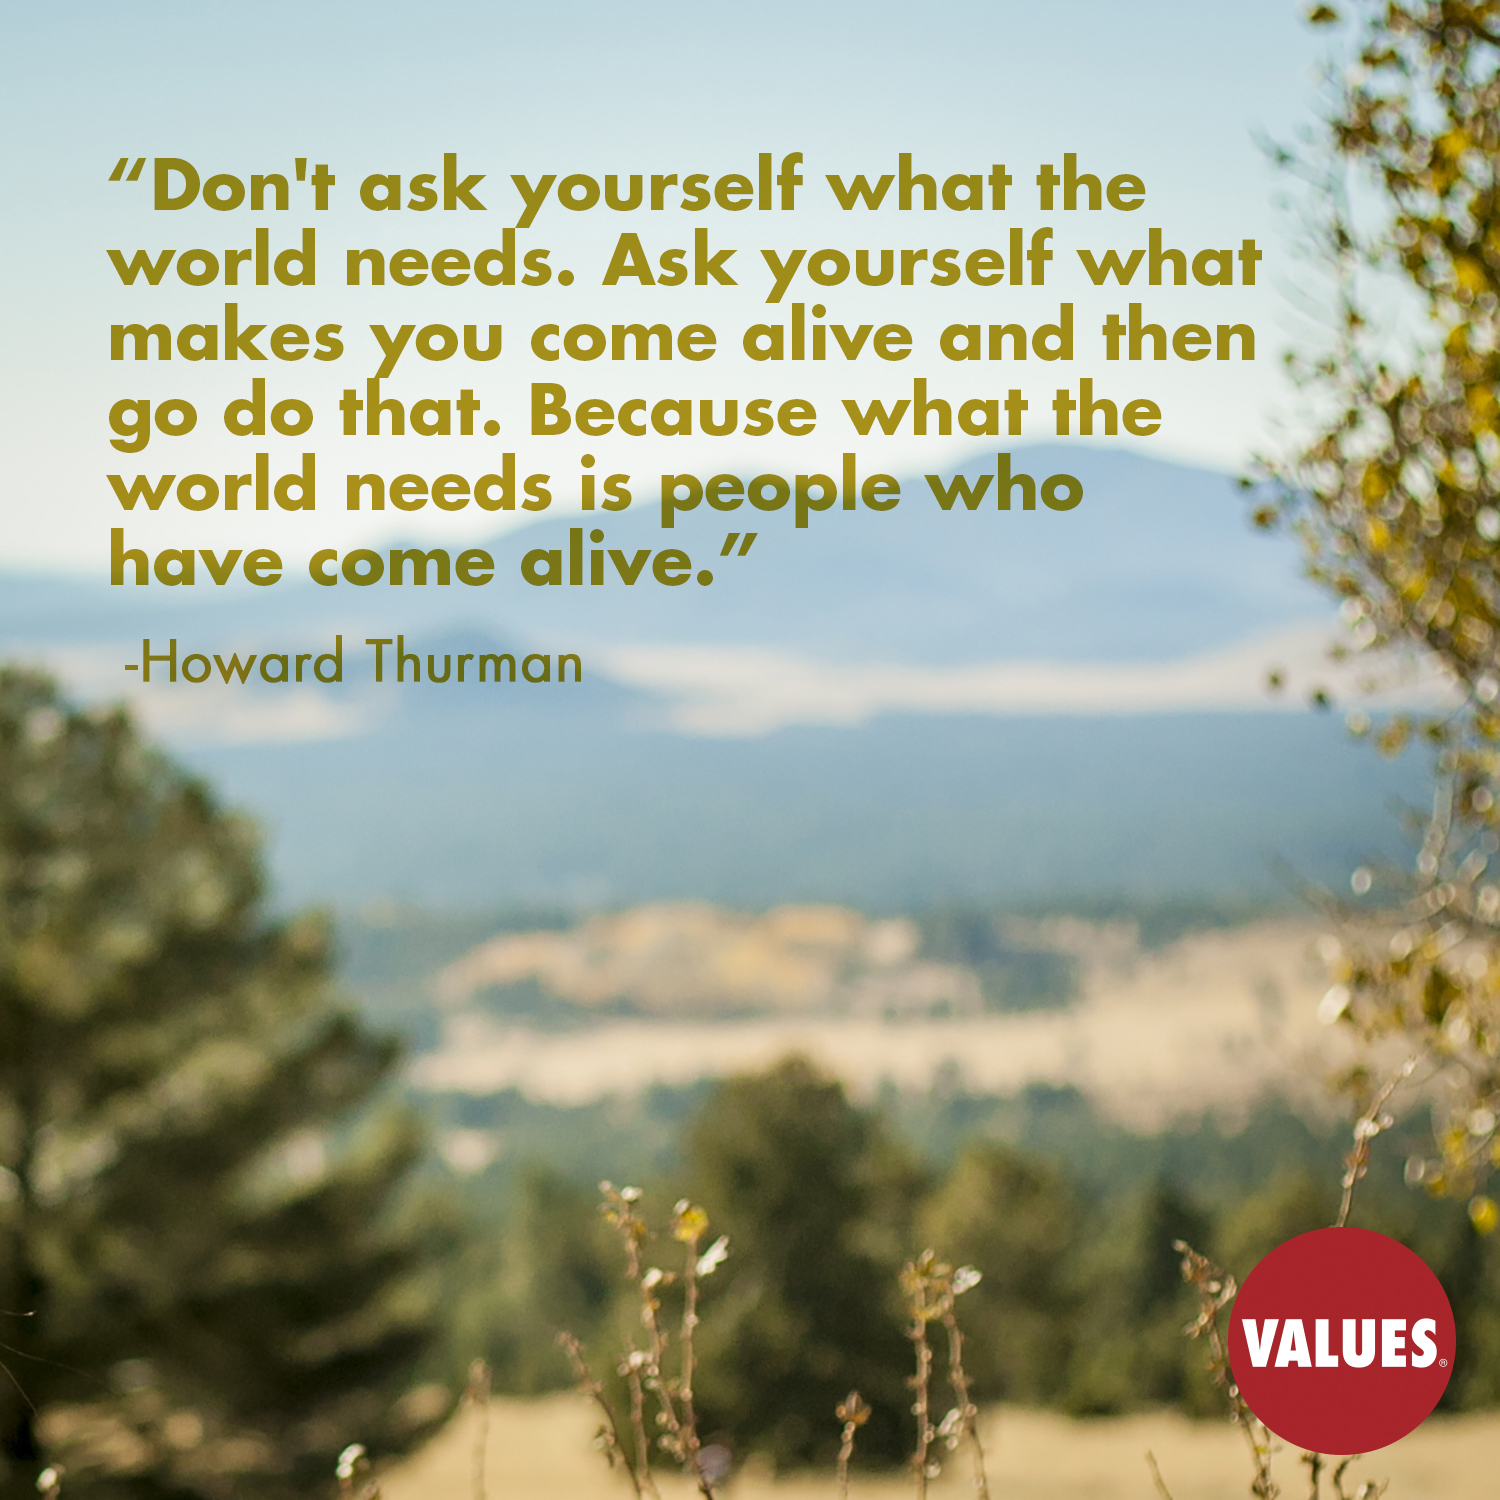 Don't ask yourself what the world needs. Ask yourself what makes you come alive and then go do that. Because what the world needs is people who have come alive. —Howard Thurman